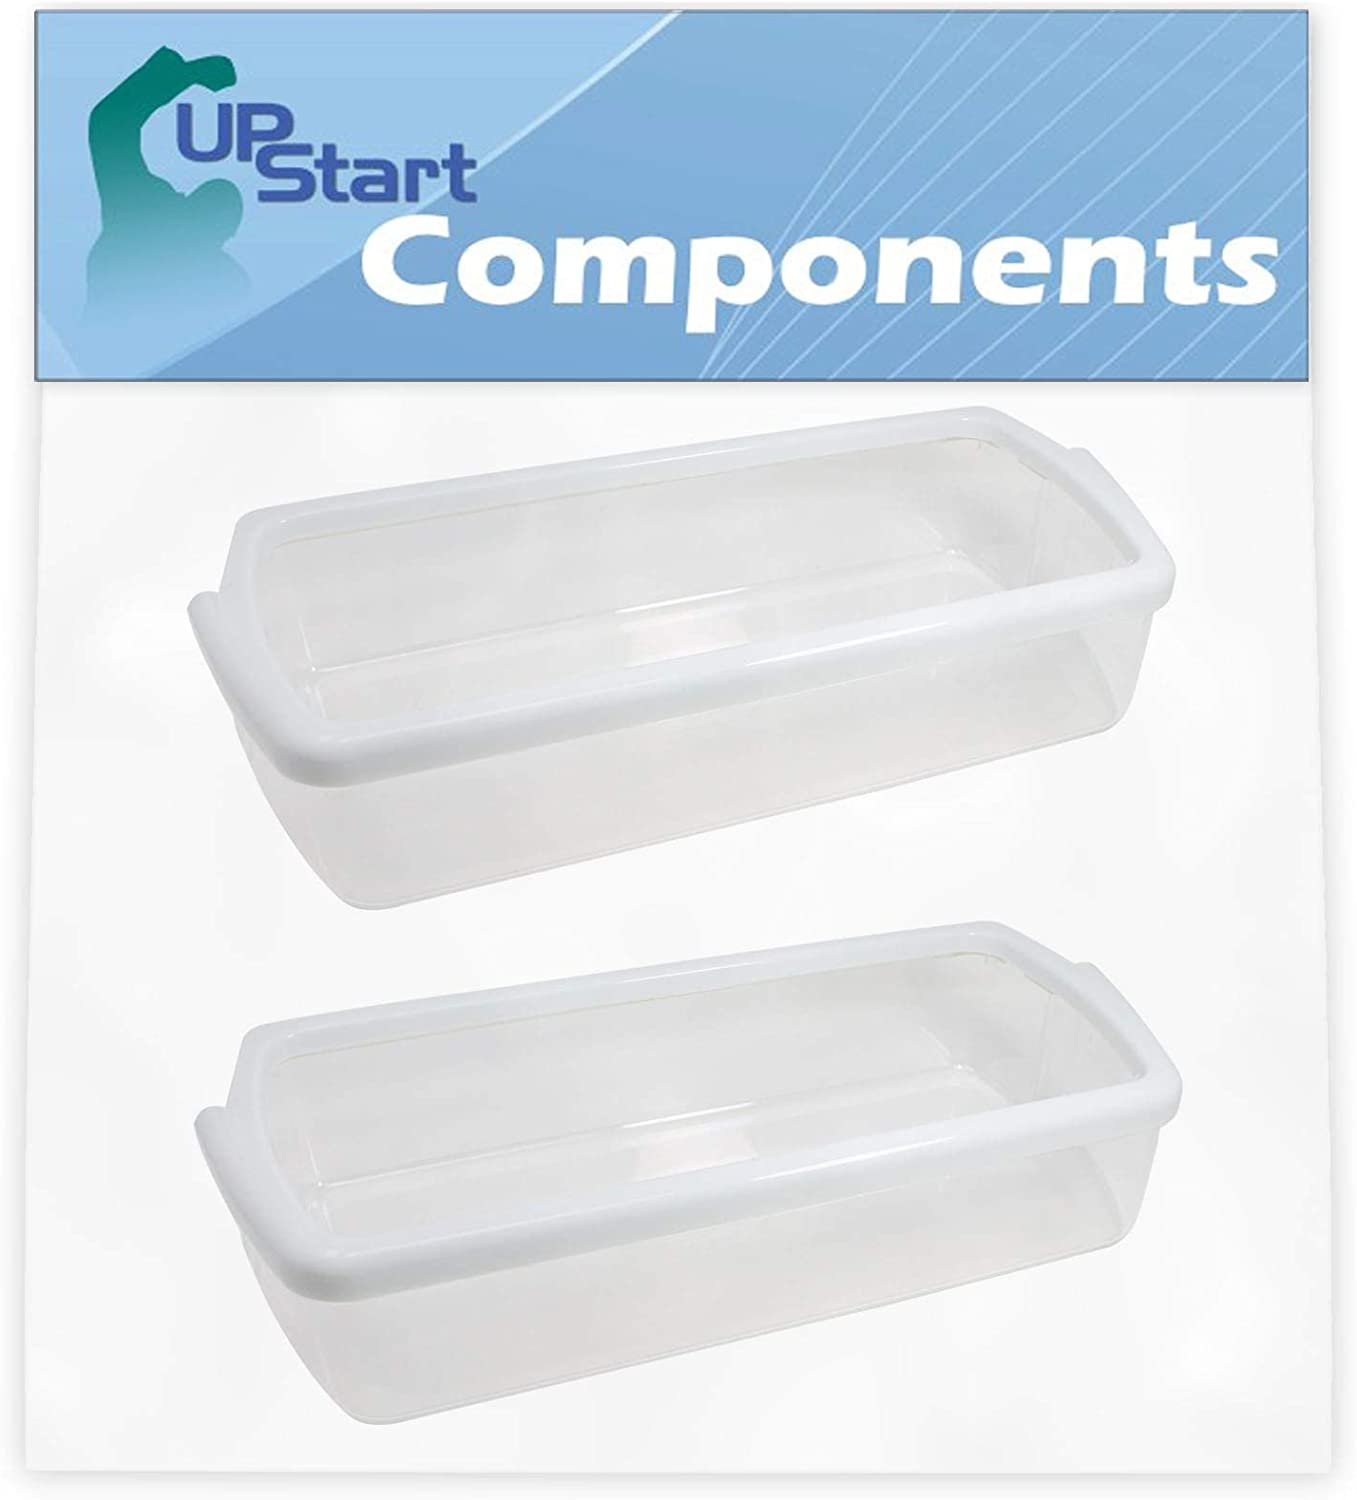 2-Pack Manufacturer regenerated product W10321304 Cheap super special price Refrigerator Door Bin Replacement Kenmore for S